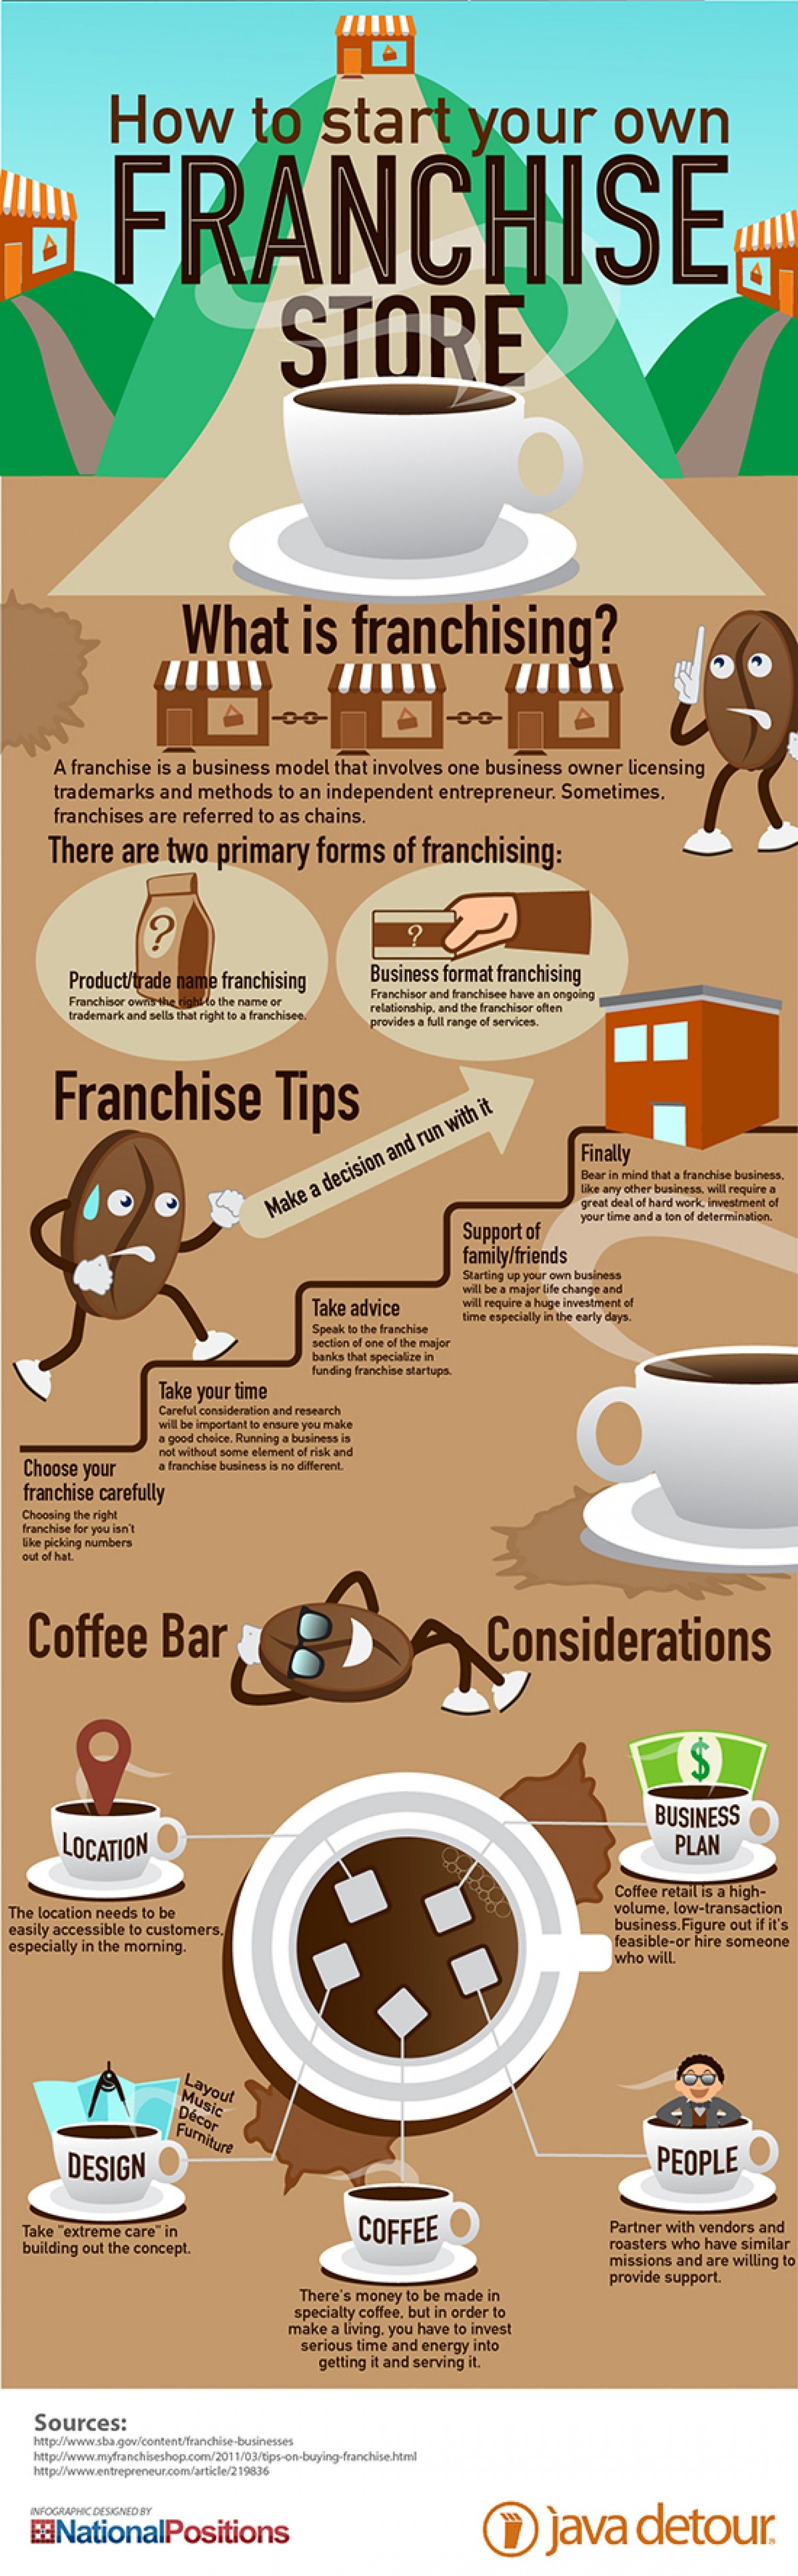 Franchising: A form of liscensing in which a franchiser, in exchange for a finacial commitment, grants a franchise the right to market its product in accordance with the franchisers standards.